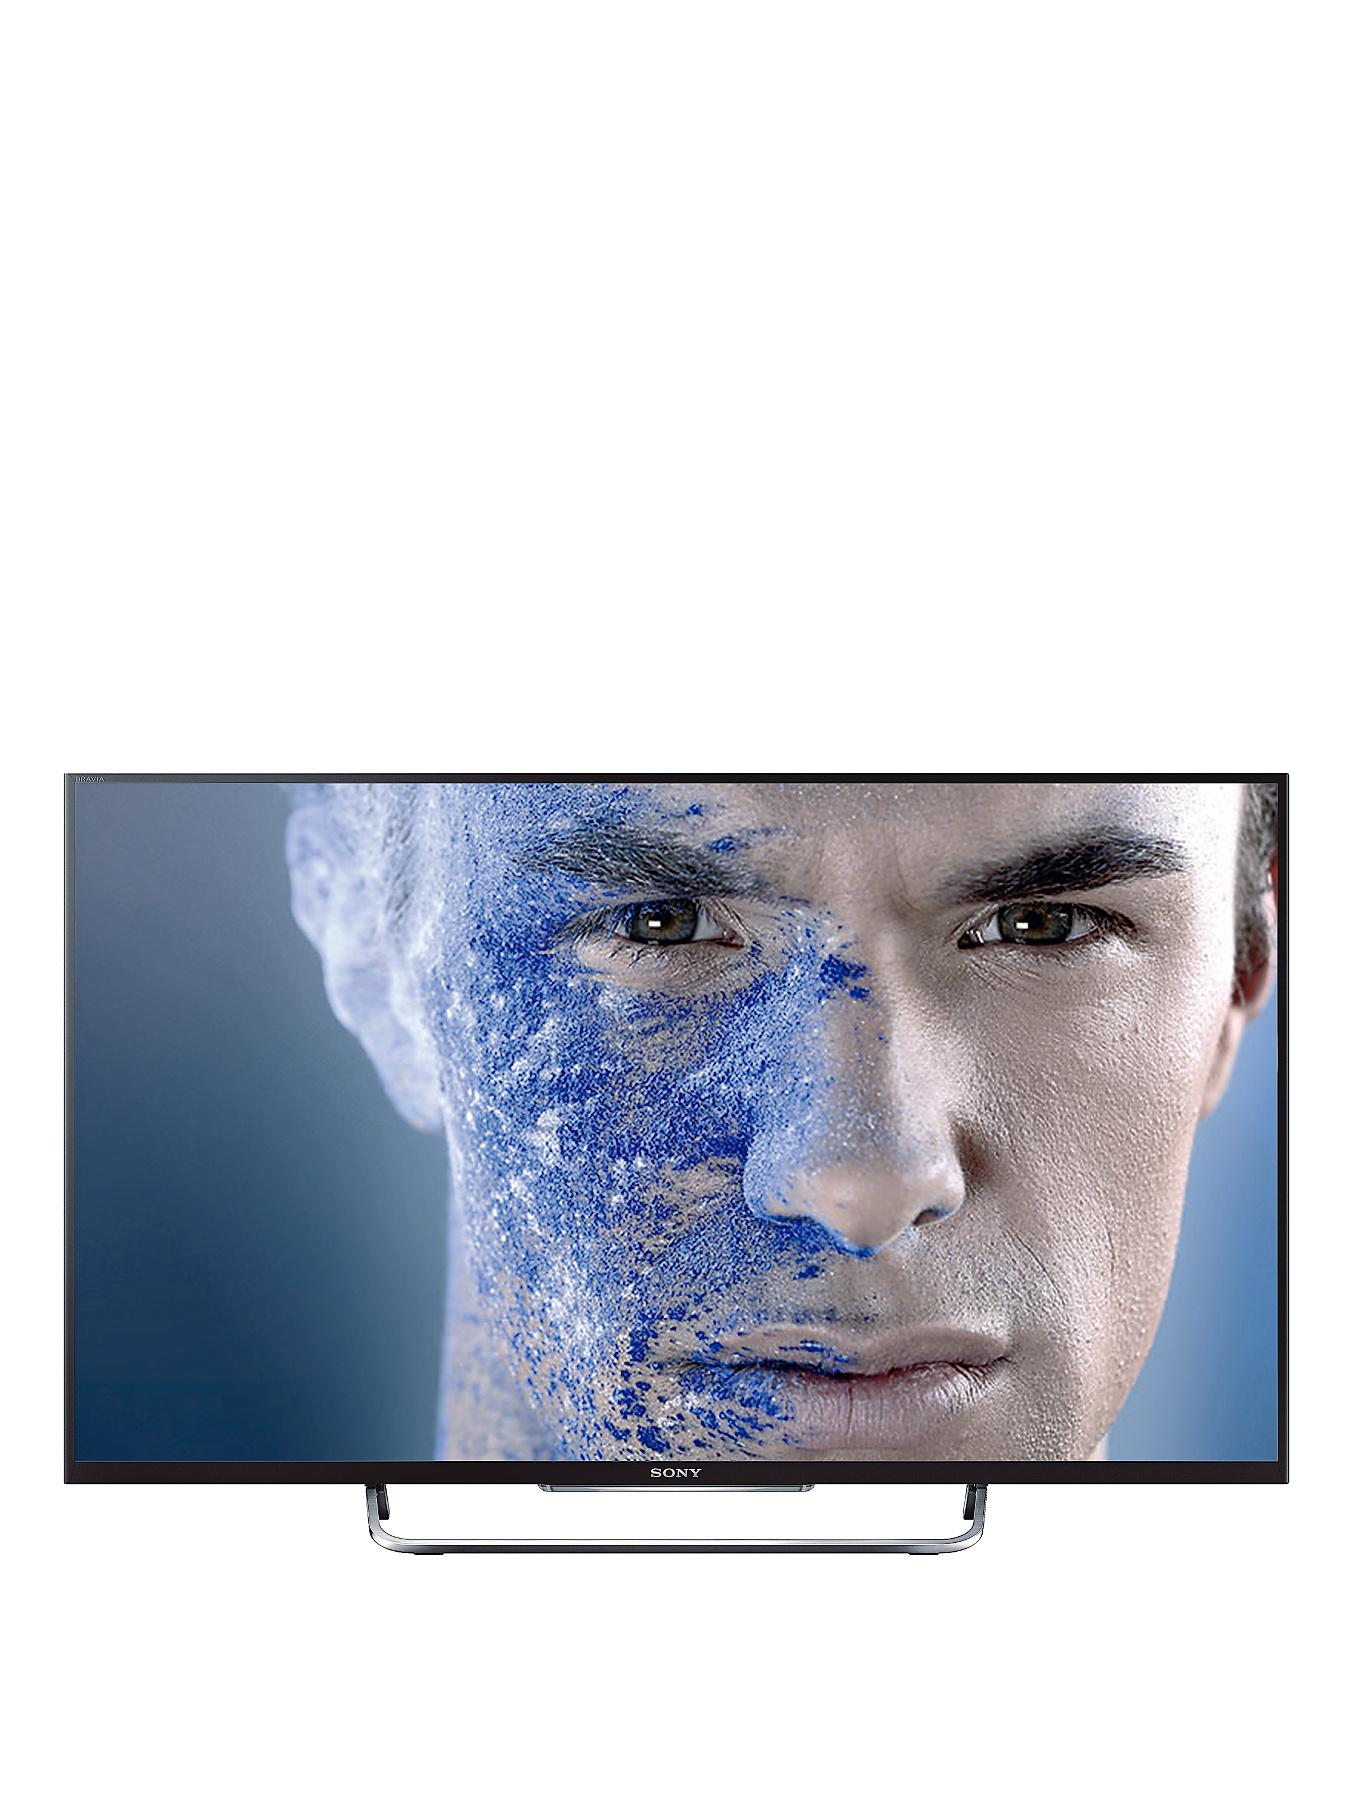 Sony KDL32W705B 32-inch Widescreen Full HD 1080p Smart TV with Freeview